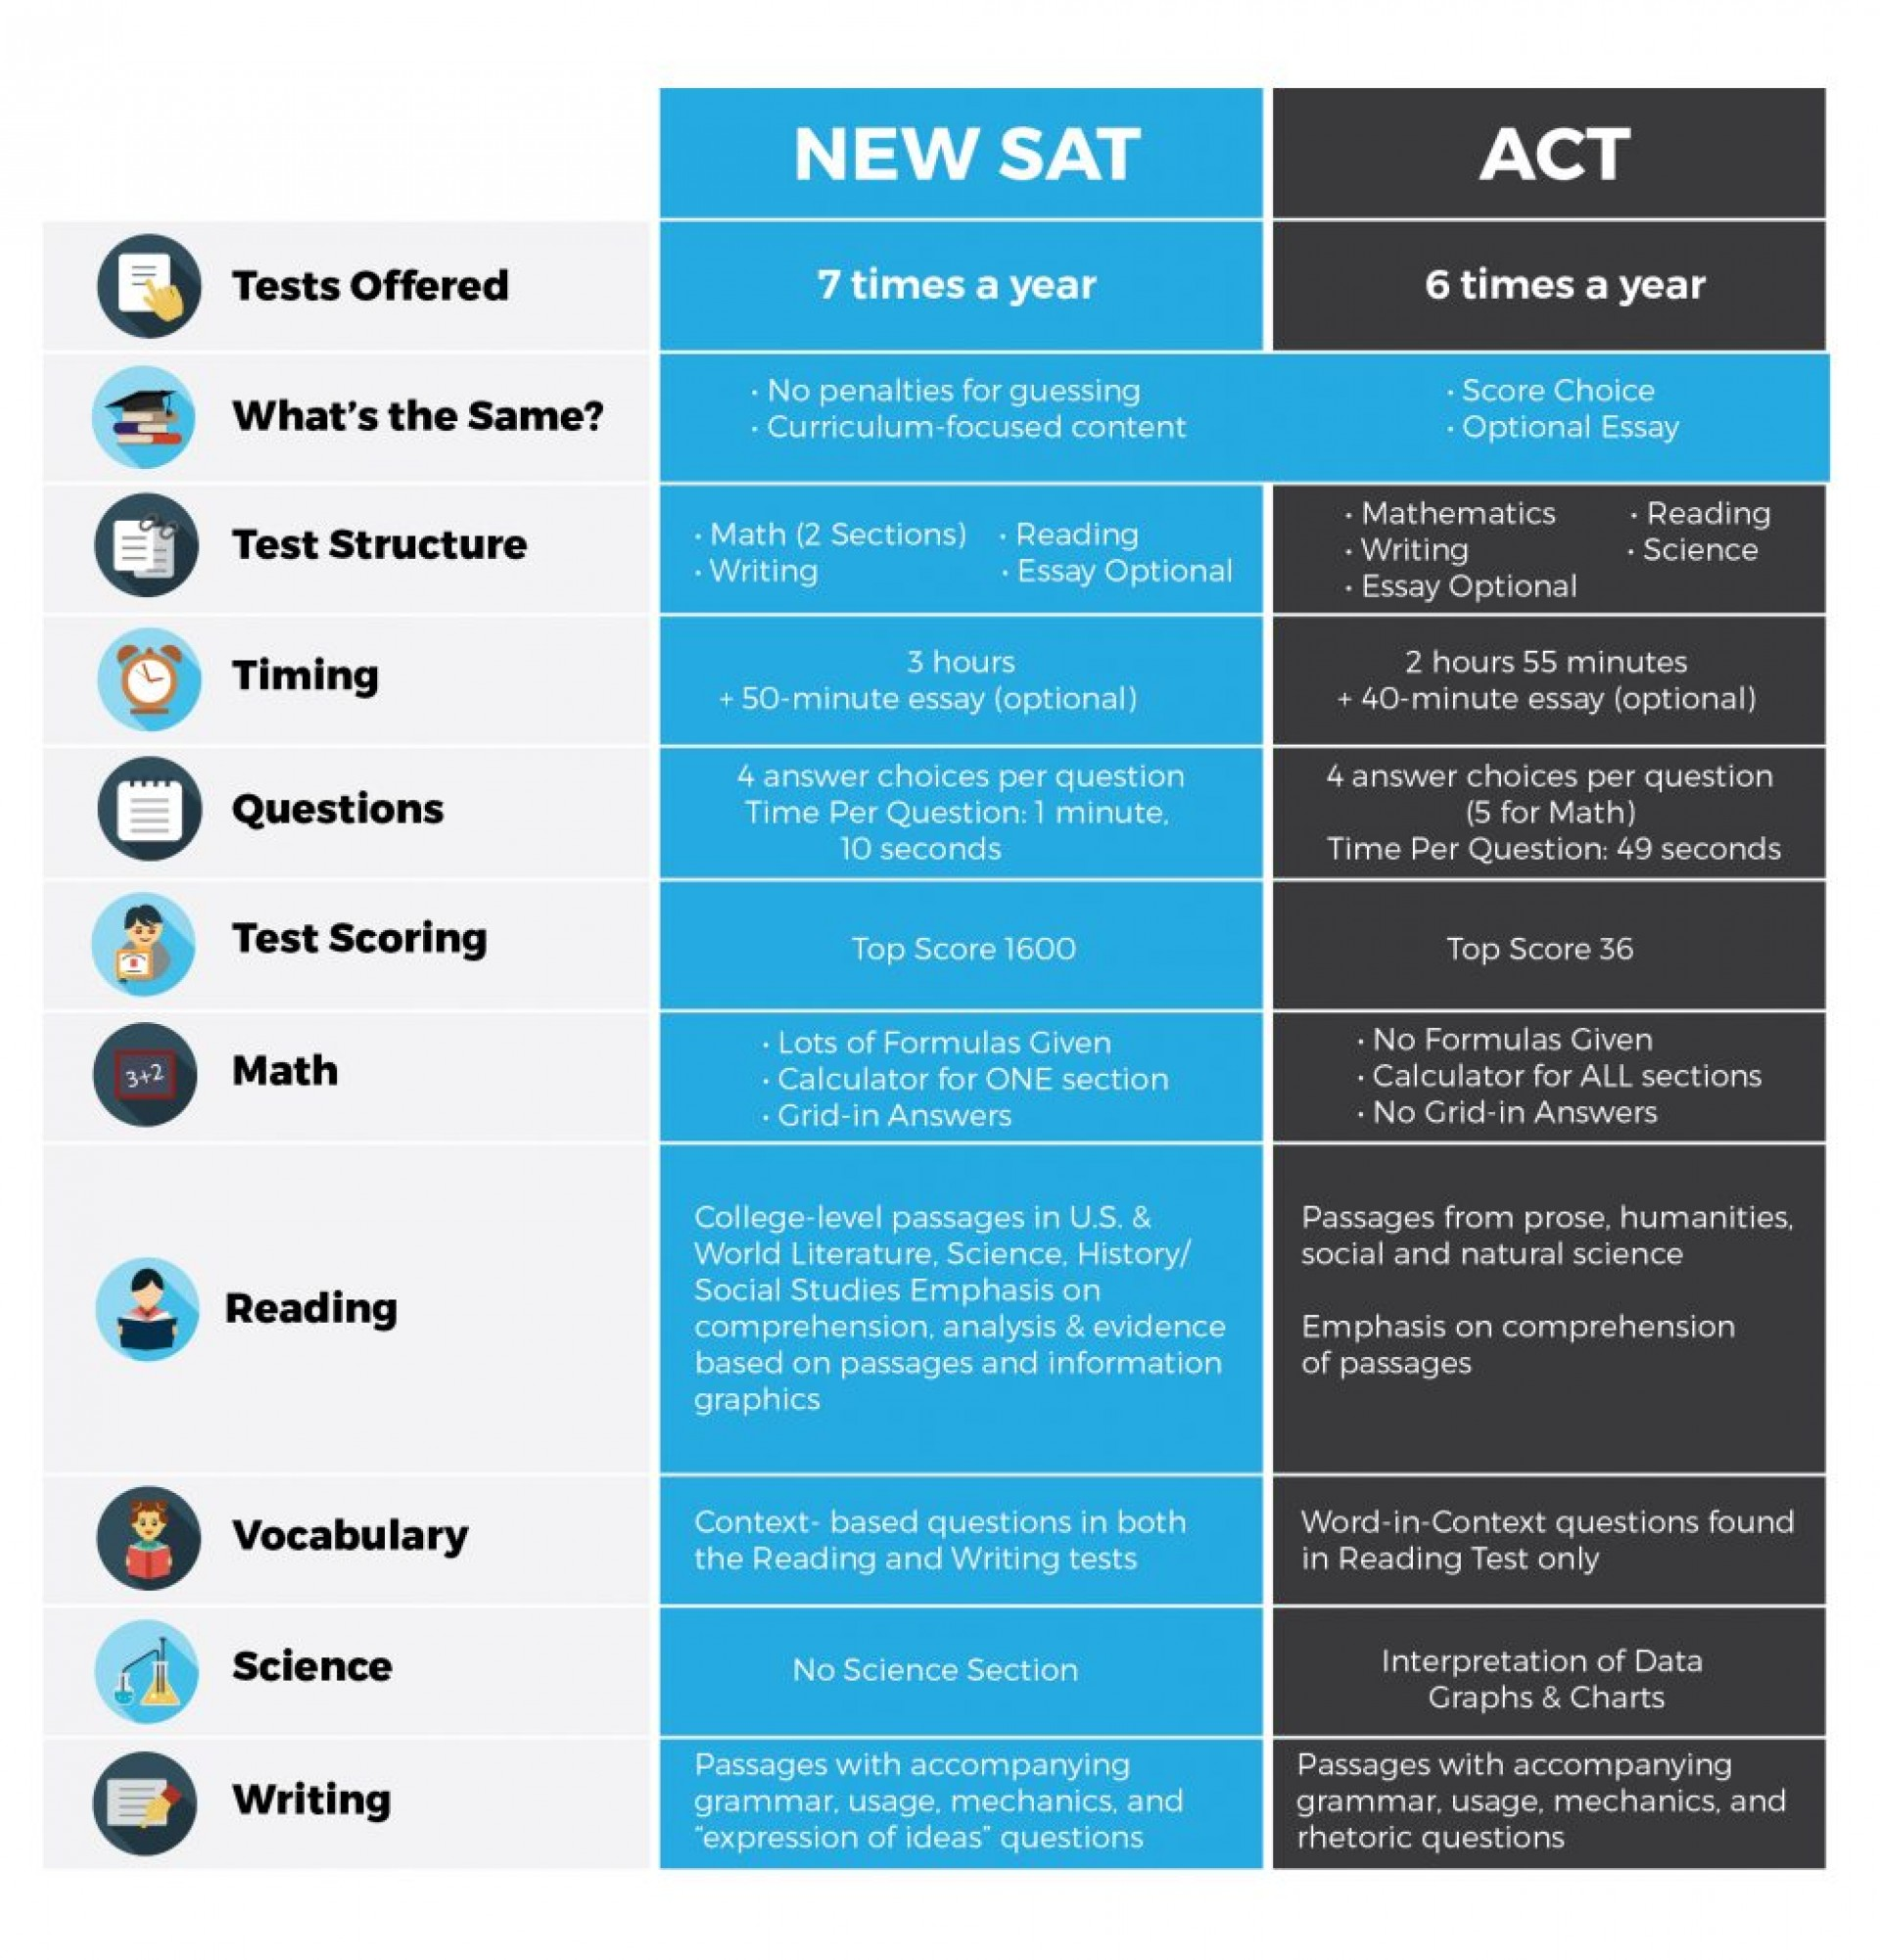 005 What Colleges Require Sat Essay New Vs Act 982x1024 Formidable 1920